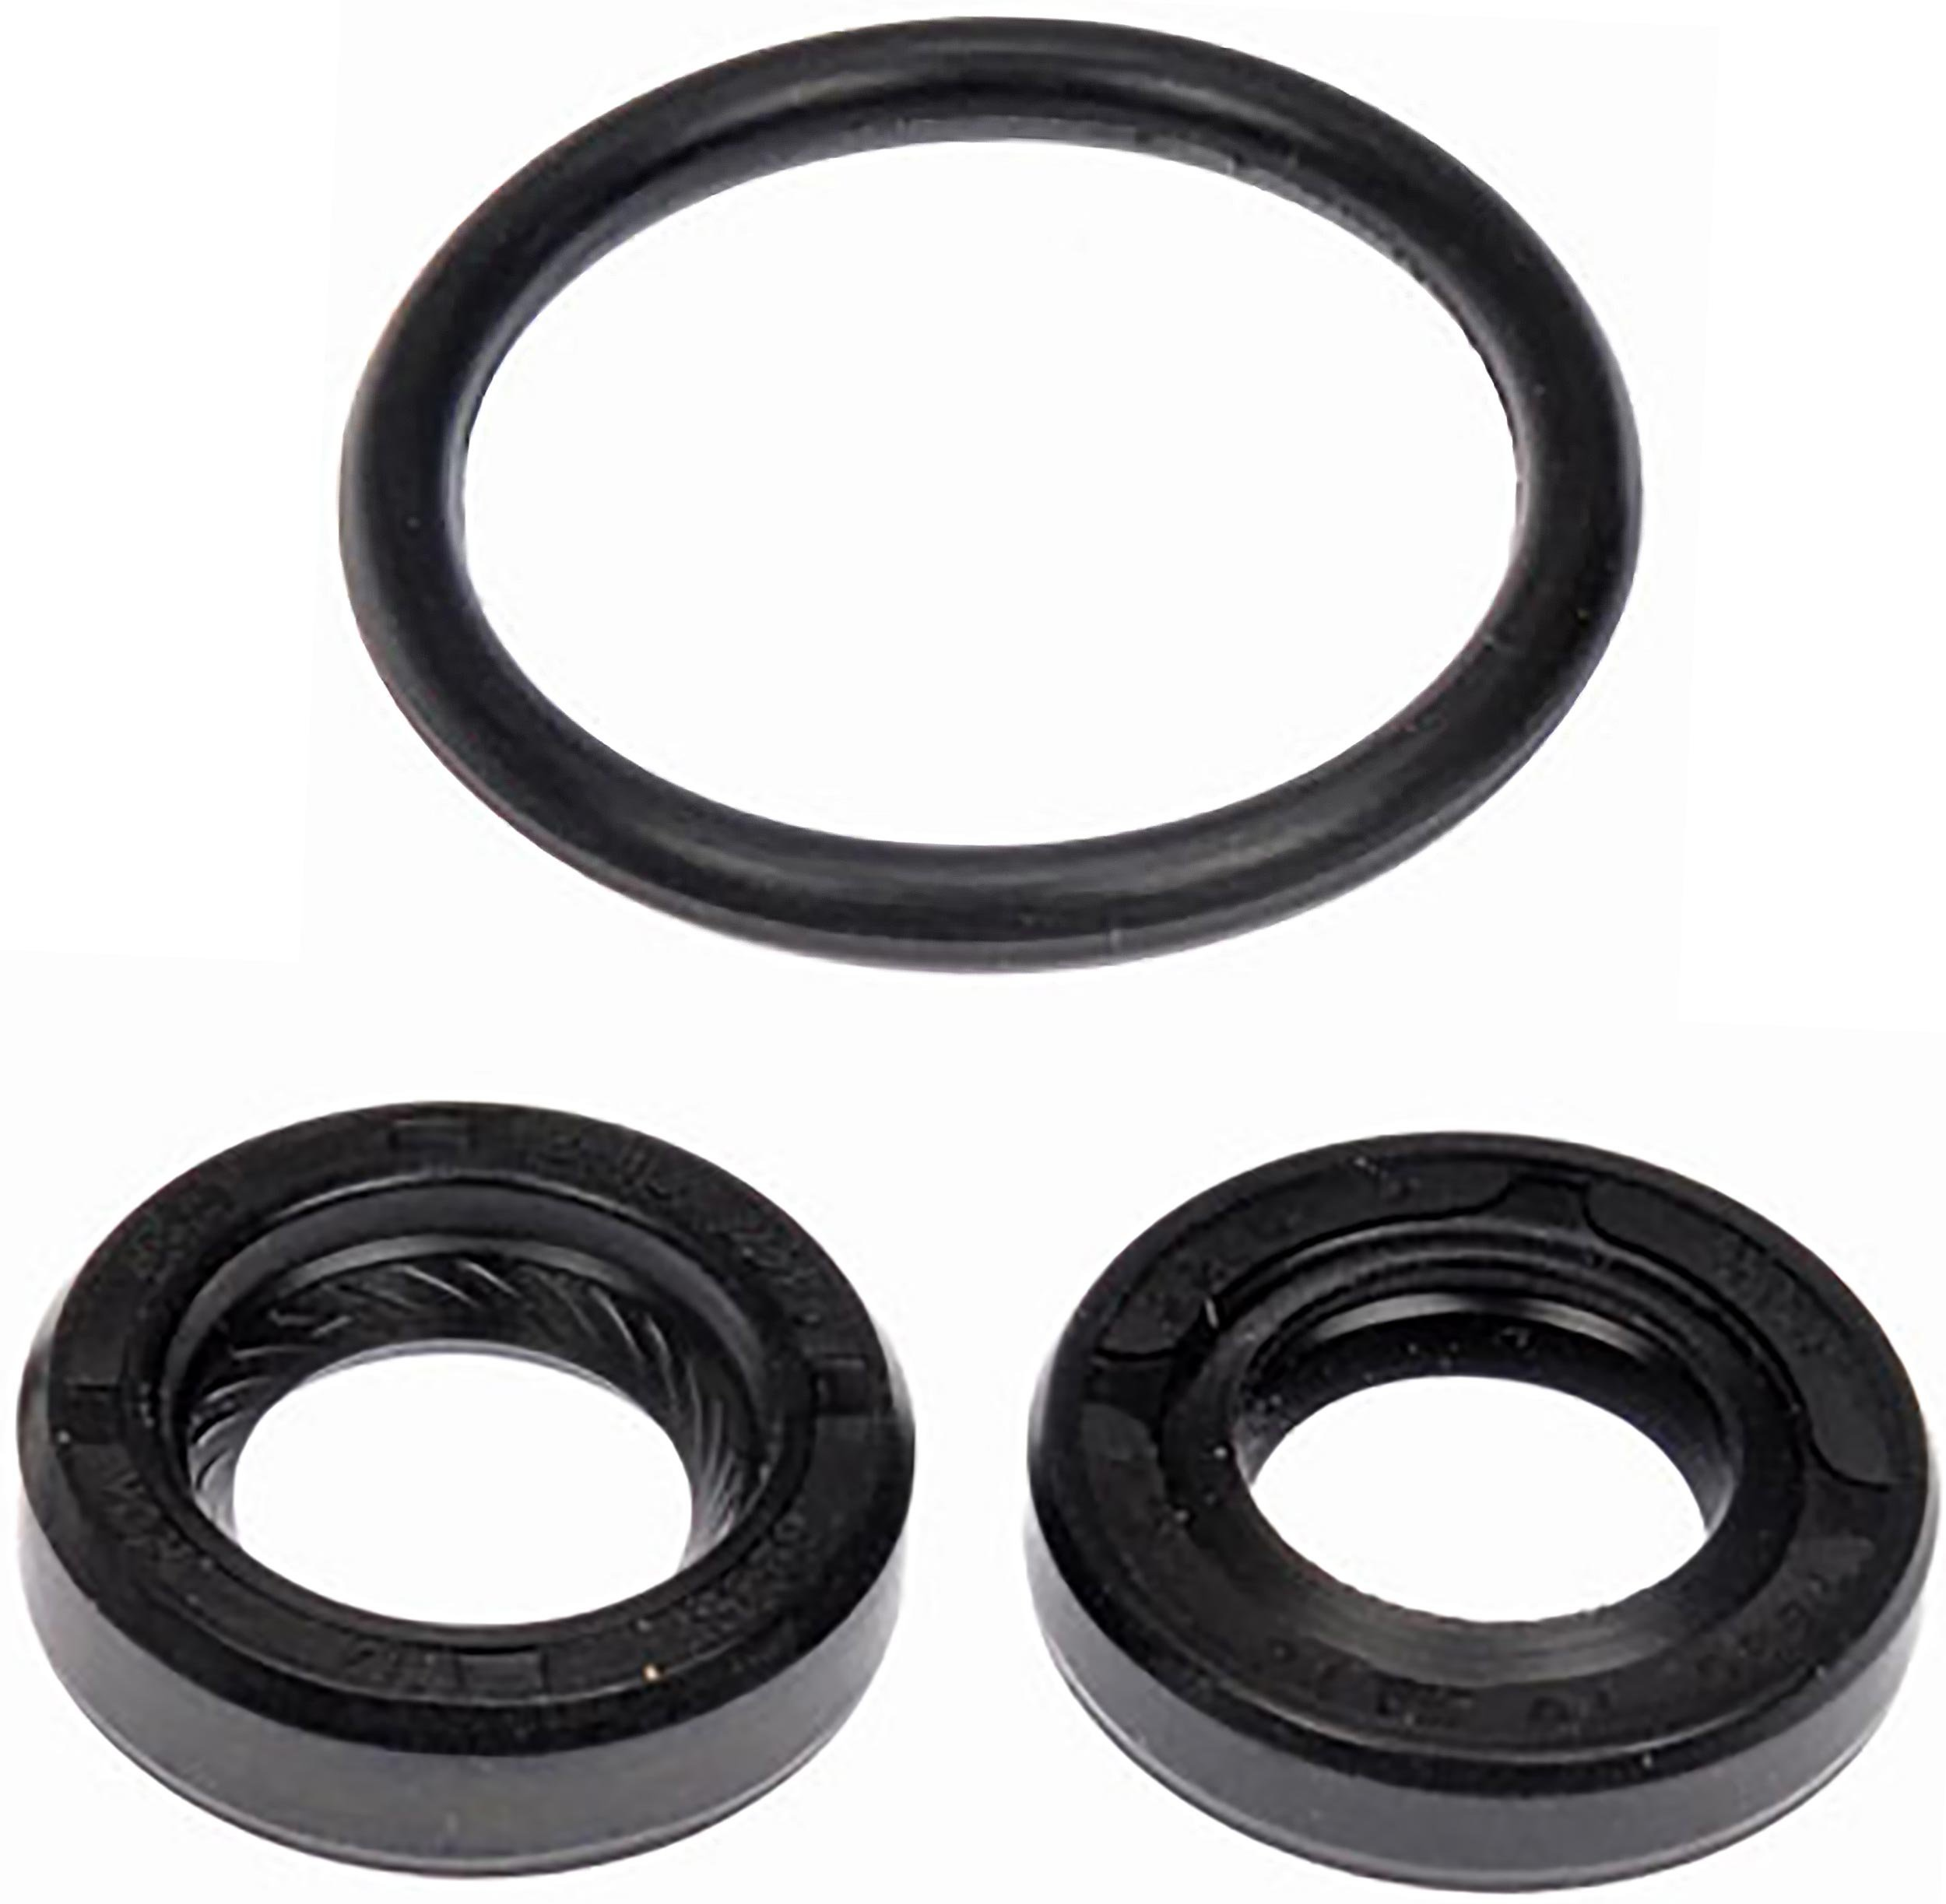 APDTY 028247 Oil Distributor Seal O-Ring Kit Fits Select 1975-2002 Acura CL / Honda Accord, CR-V, CRX, Civic, Del Sol, Prelude, Wagovan (Replaces 30110-PA1-732, 30110PA1732)